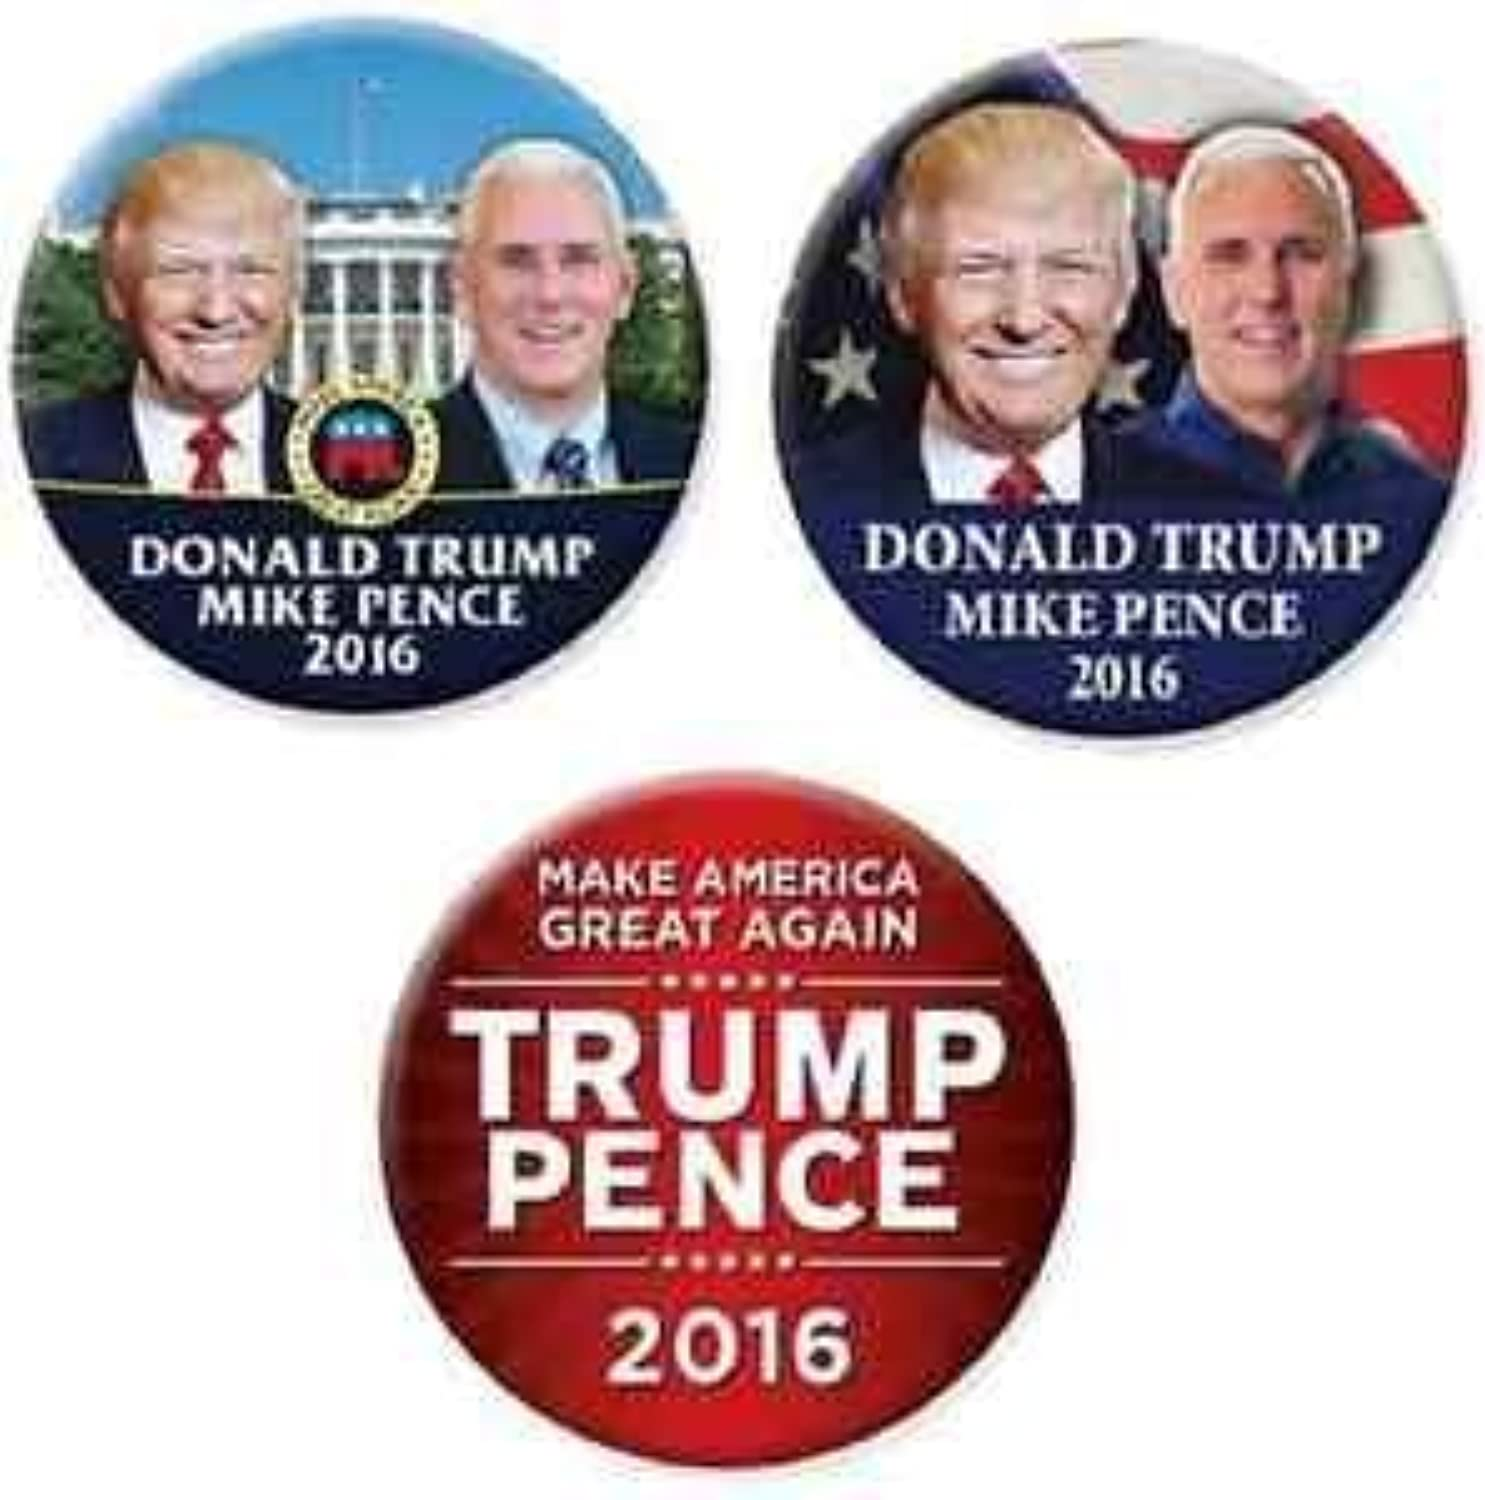 Just Released  Donald Trump Mike Pence 2016 Campaign Button Set by NEW